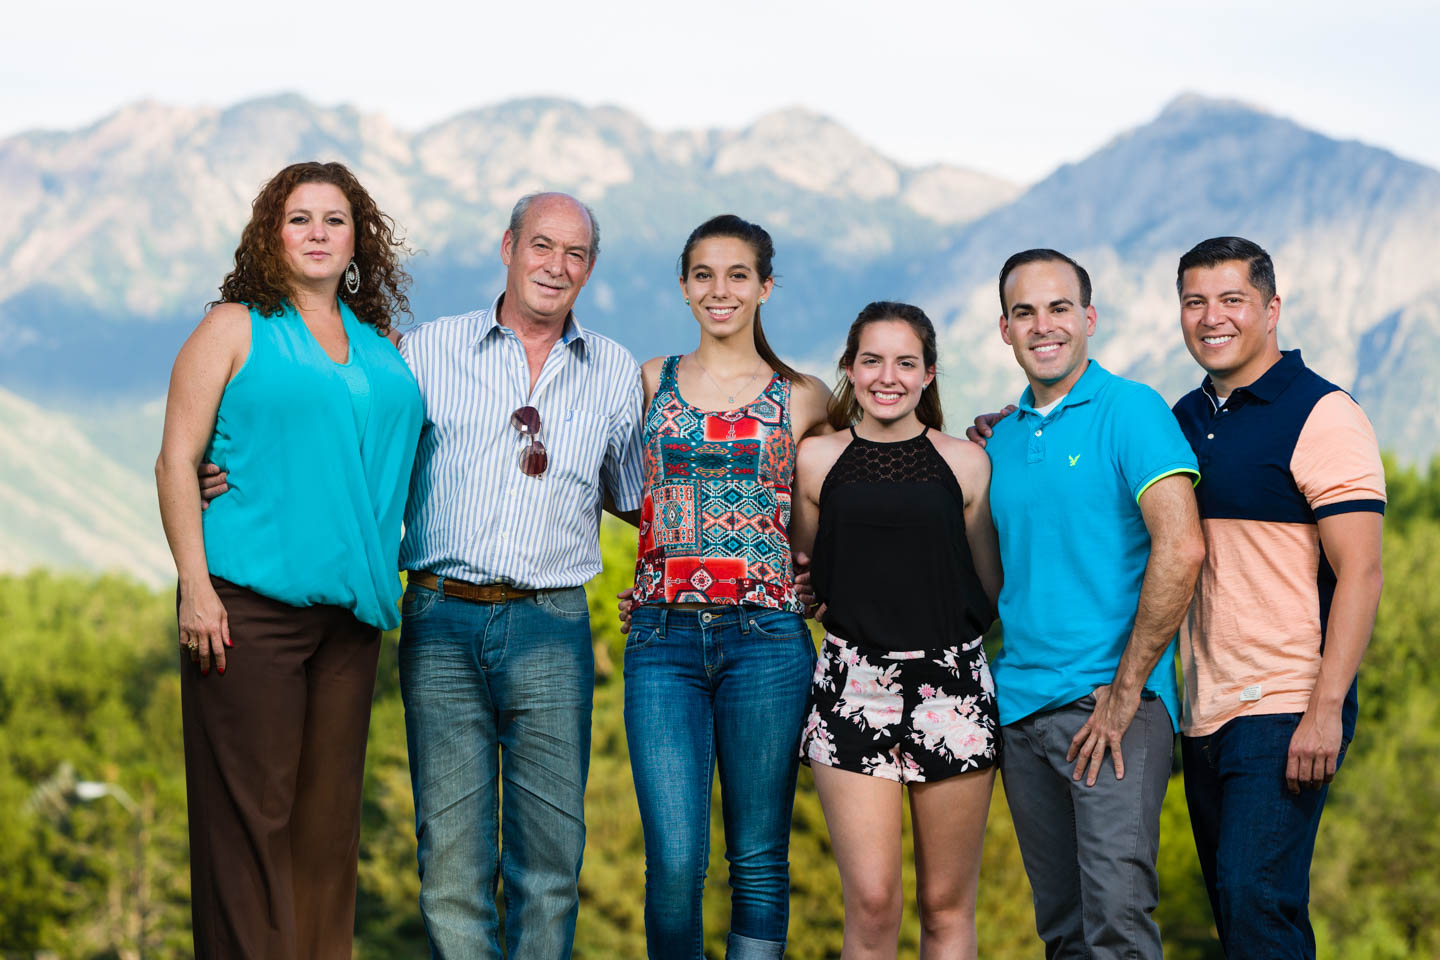 Family Photography for the De Freitas family